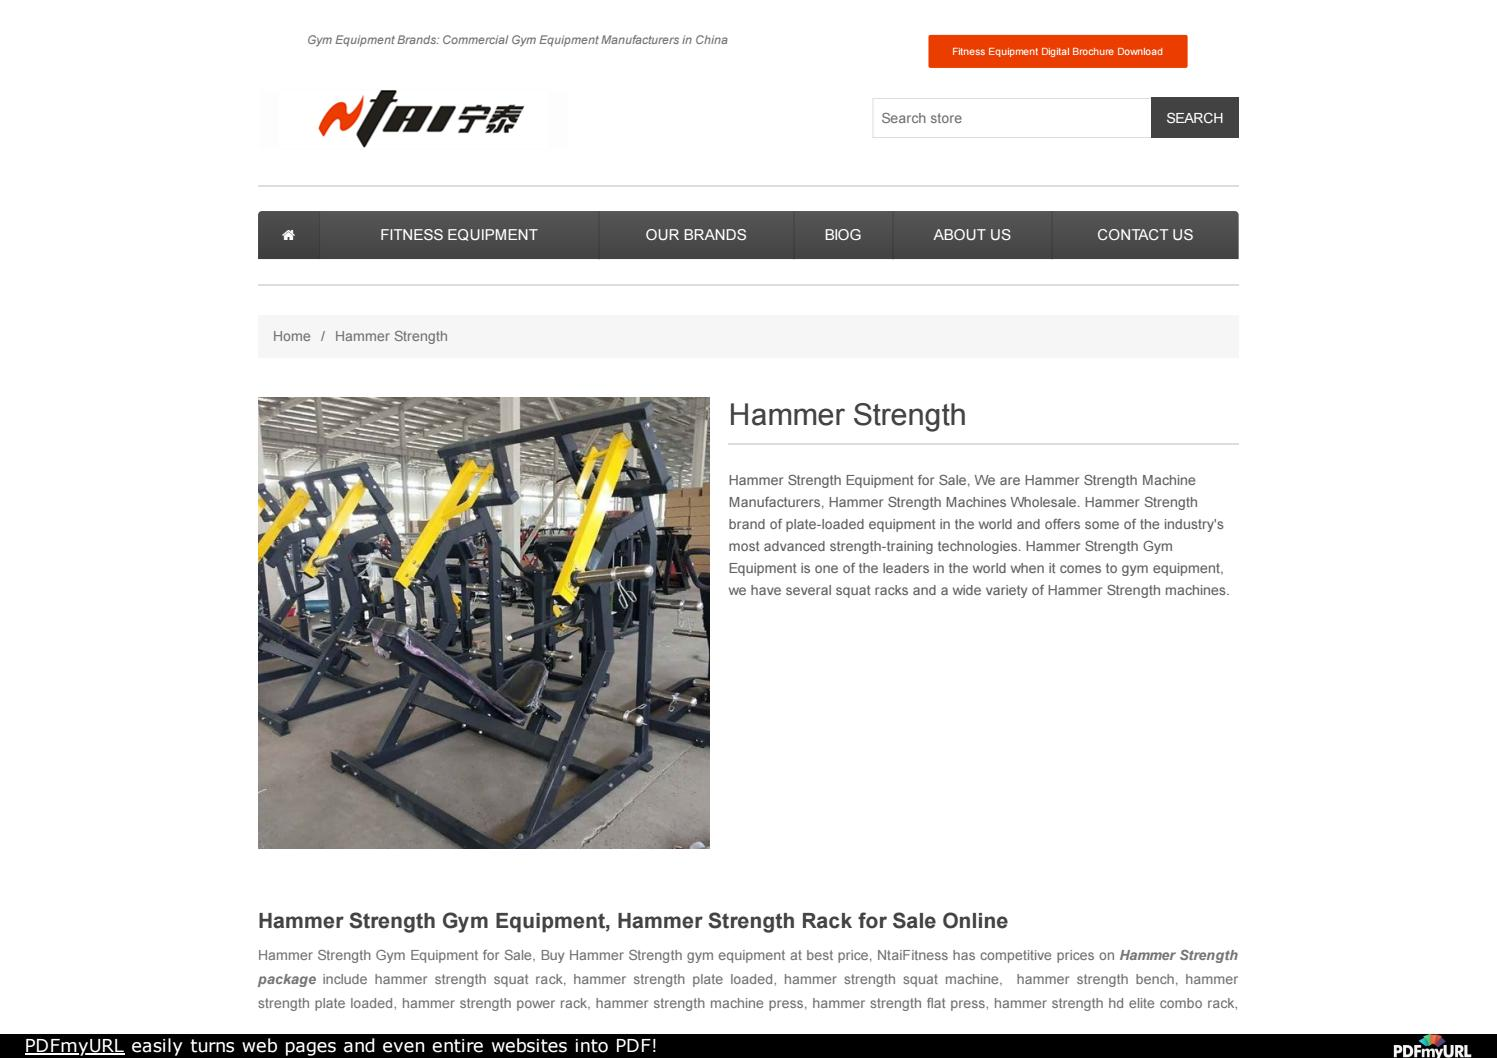 be5a25406d Buy Hammer Strength Gym Equipment by China Fitness Equipment NtaiFitness -  issuu